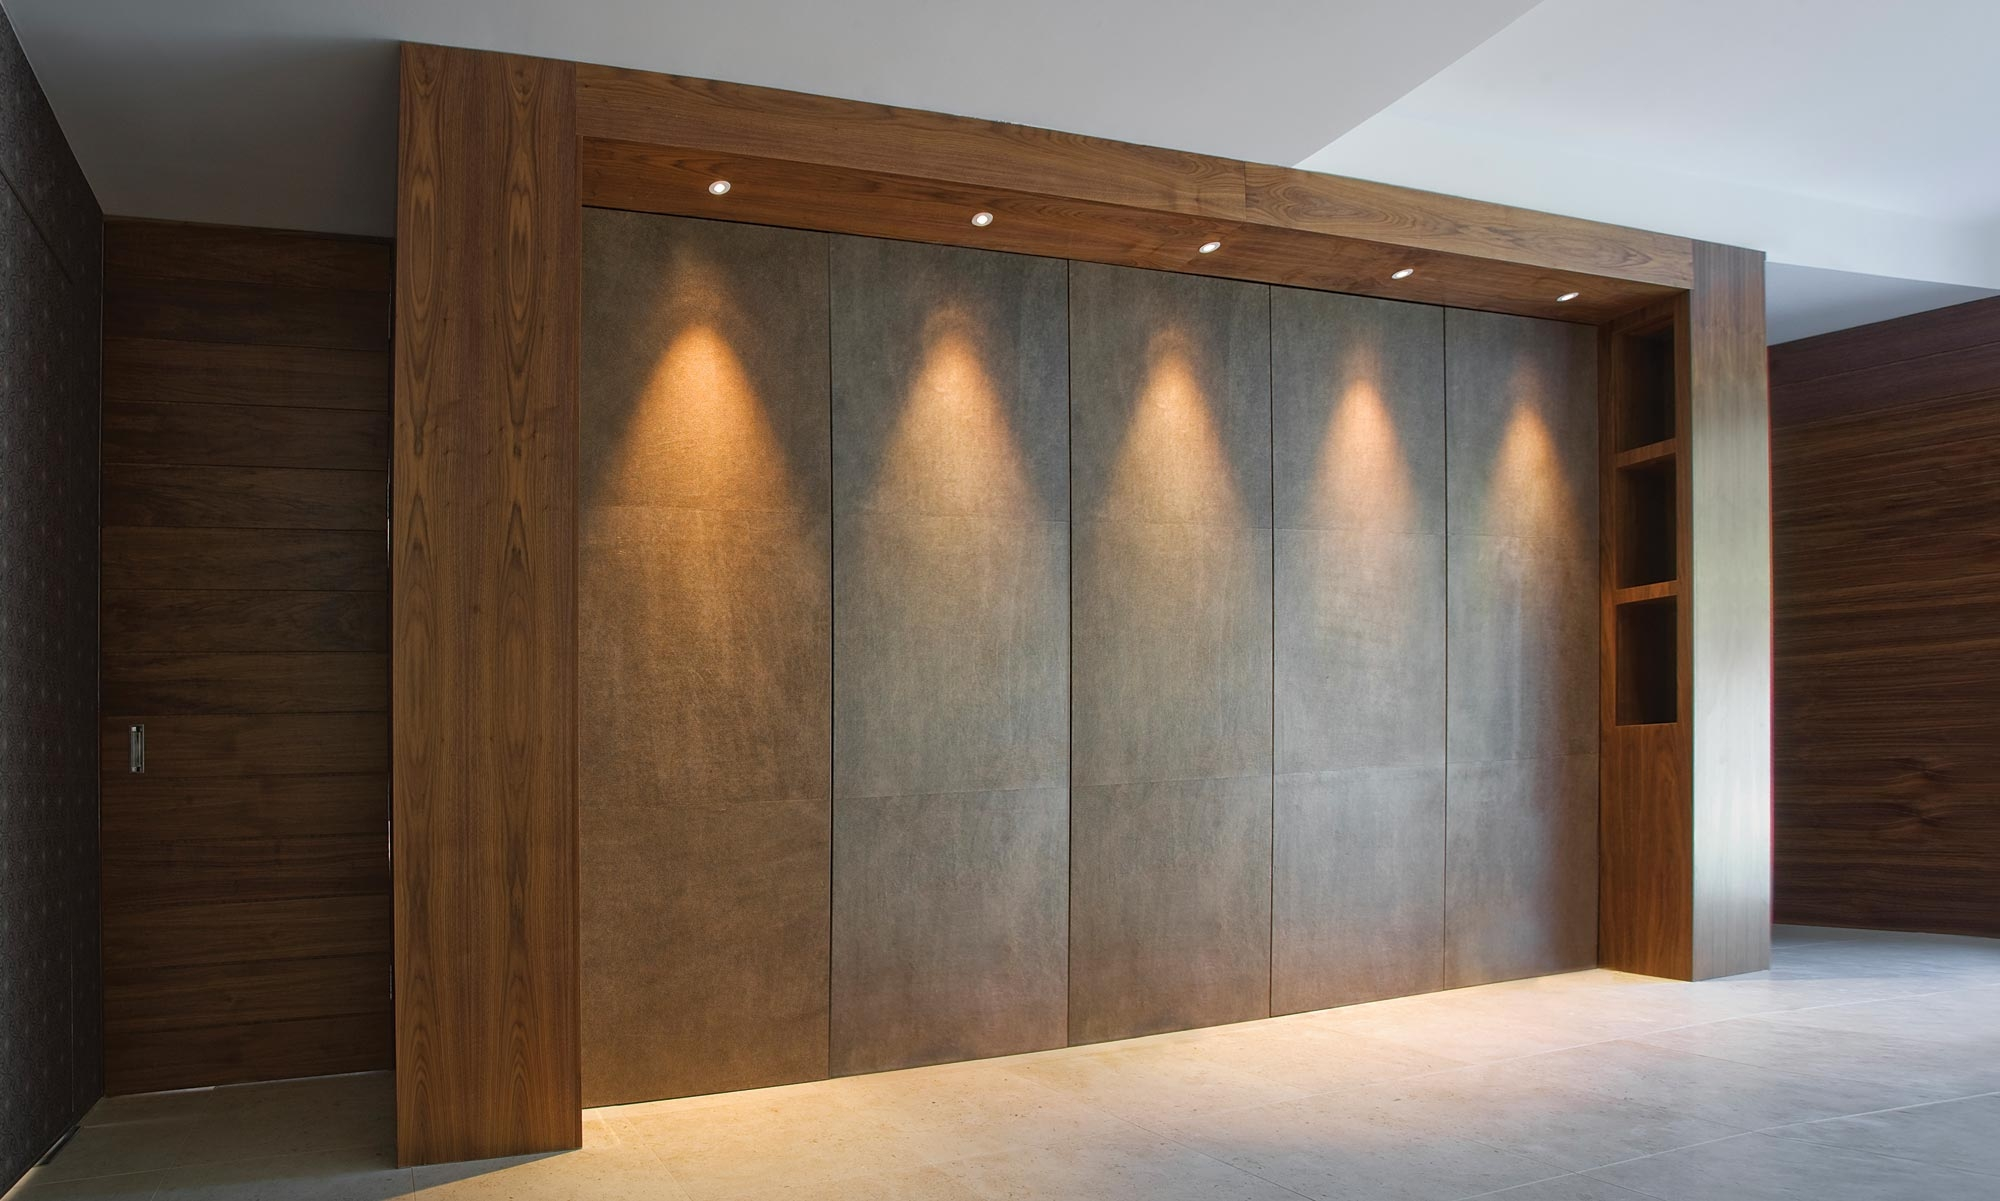 Bespoke Fitted Furniture Wardrobes London For Bespoke Built In Furniture (View 7 of 15)